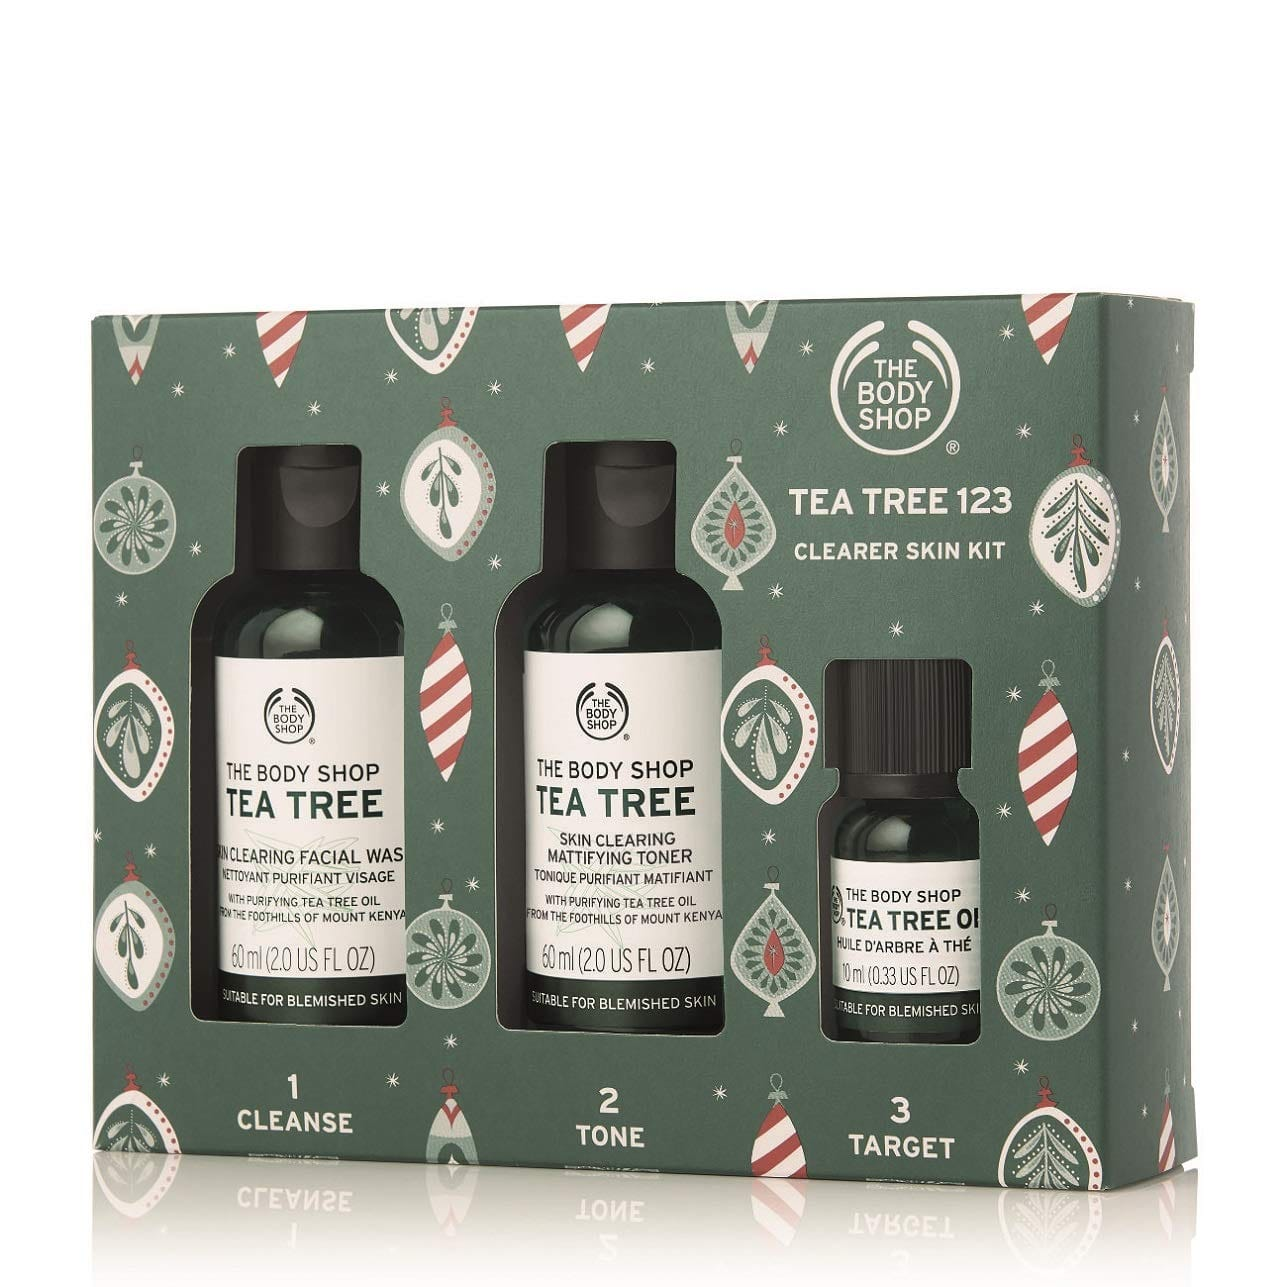 The Body Shop Tea Tree Gift Set, Simple 3-Step Routine With Tea Tree Face Wash, Toner, Oil $10 FS w/ Prime